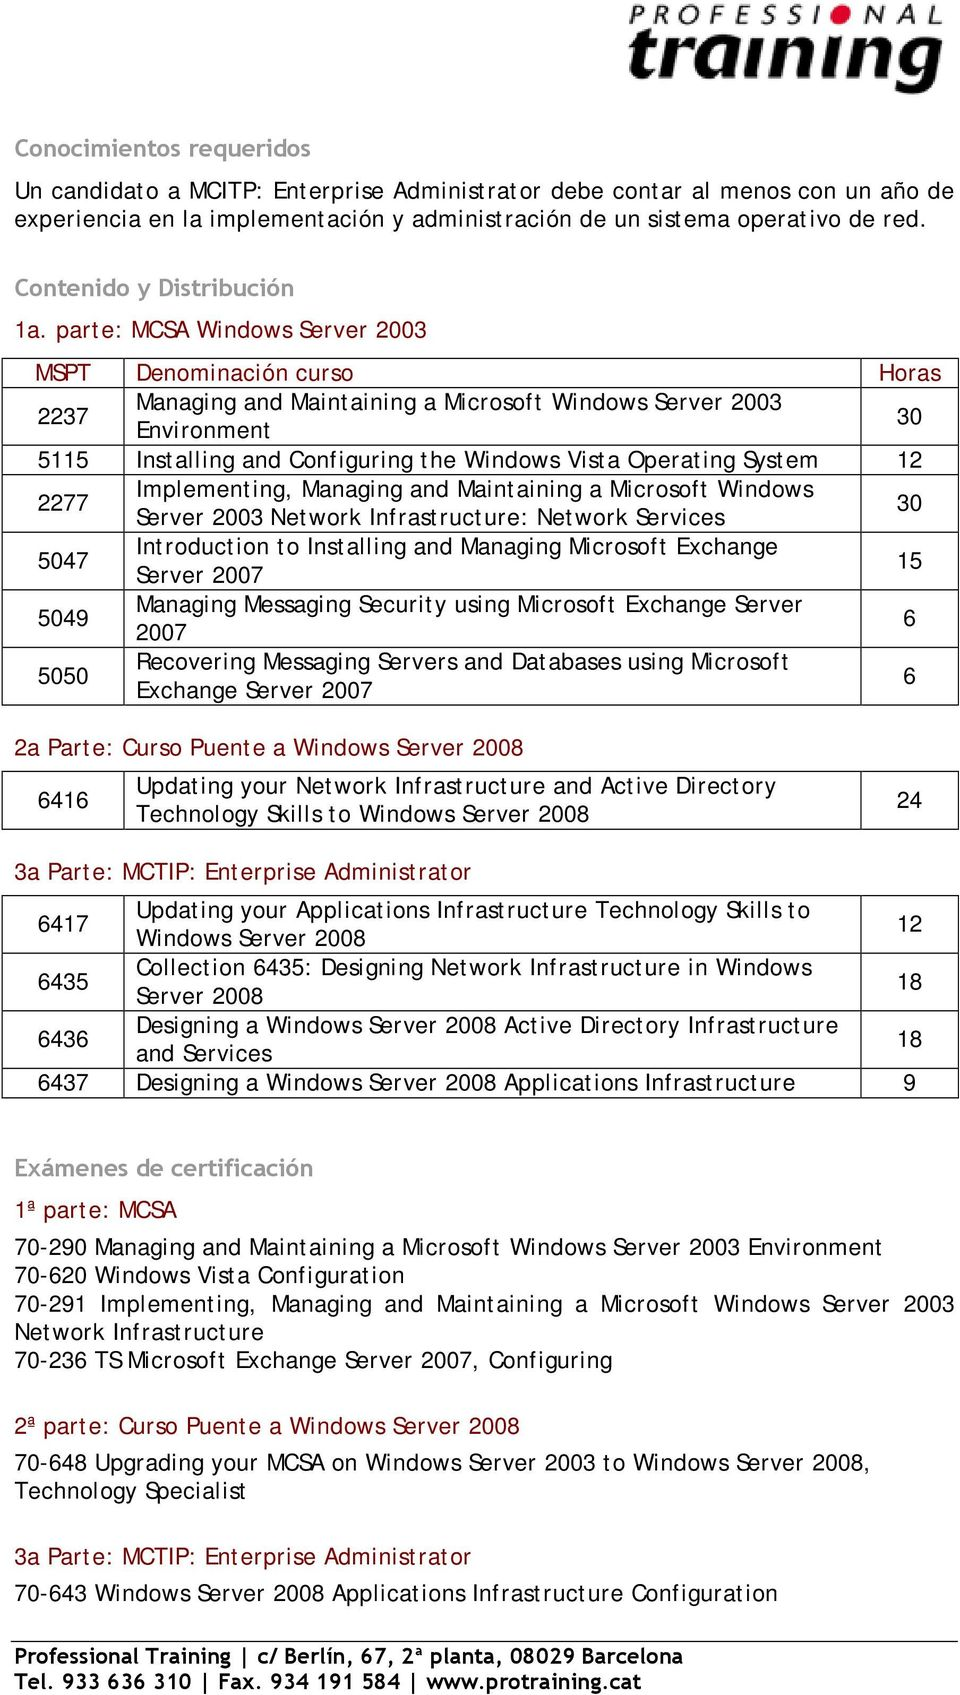 parte: MCSA Windows Server 2003 MSPT Denominación curso Horas 2237 Managing and Maintaining a Microsoft Windows Server 2003 Environment 30 5115 Installing and Configuring the Windows Vista Operating